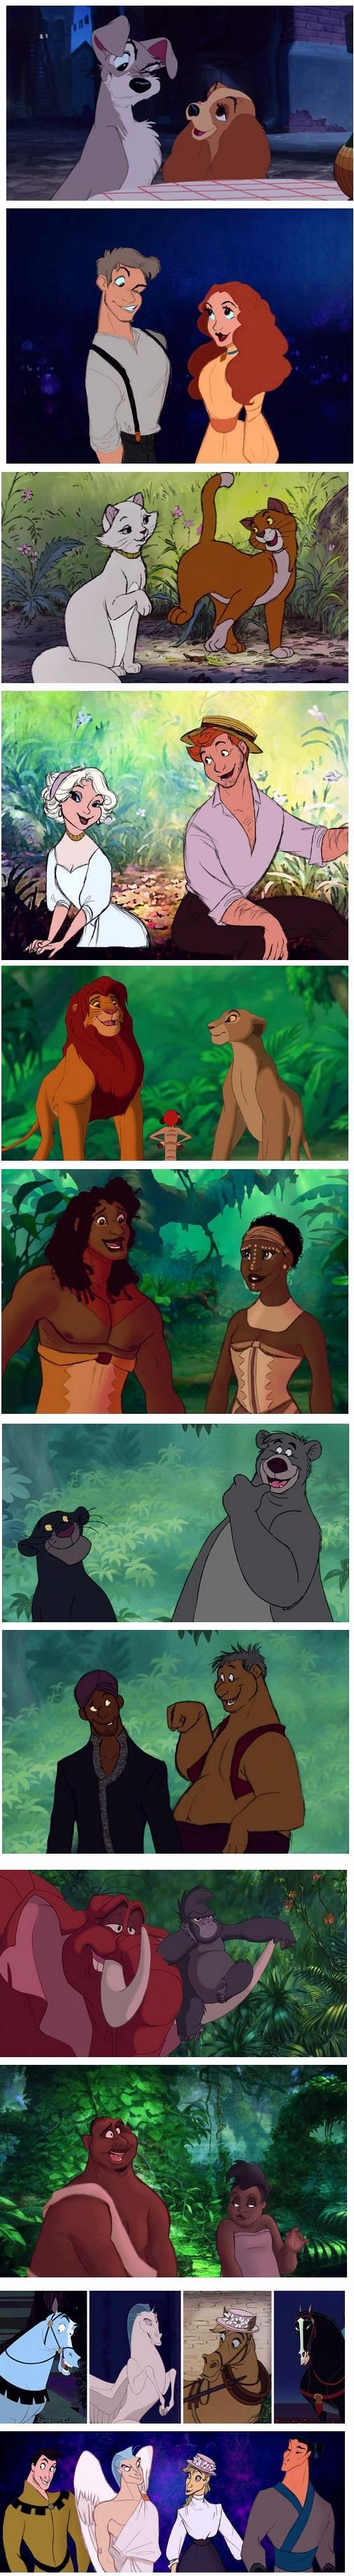 If Disney animal characters were people